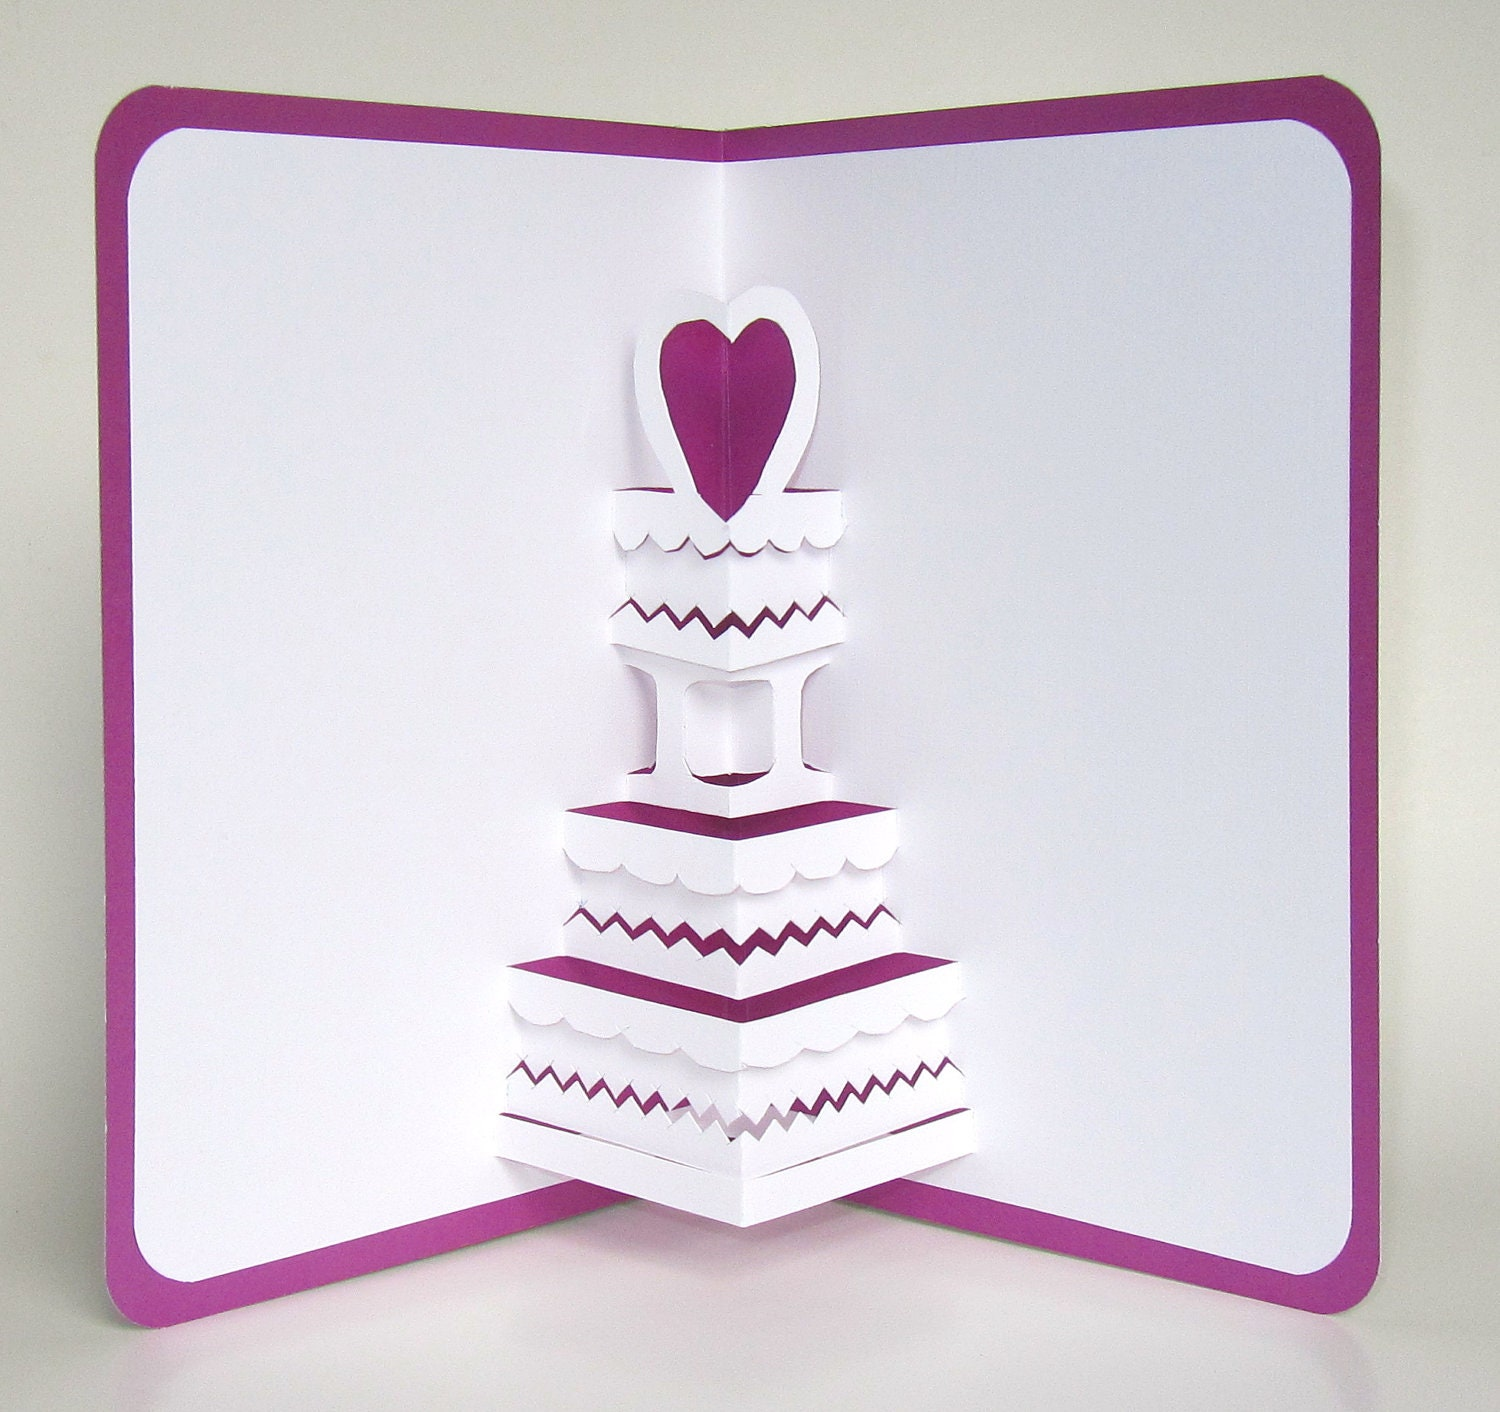 SAVE THE DATE Wedding Cake 3D Pop Up Greeting Card Valentines Il Fullxfull  Save The Date Wedding Cake 3d Pop Up Birthday Cake Card Template  Birthday Cake Card Template